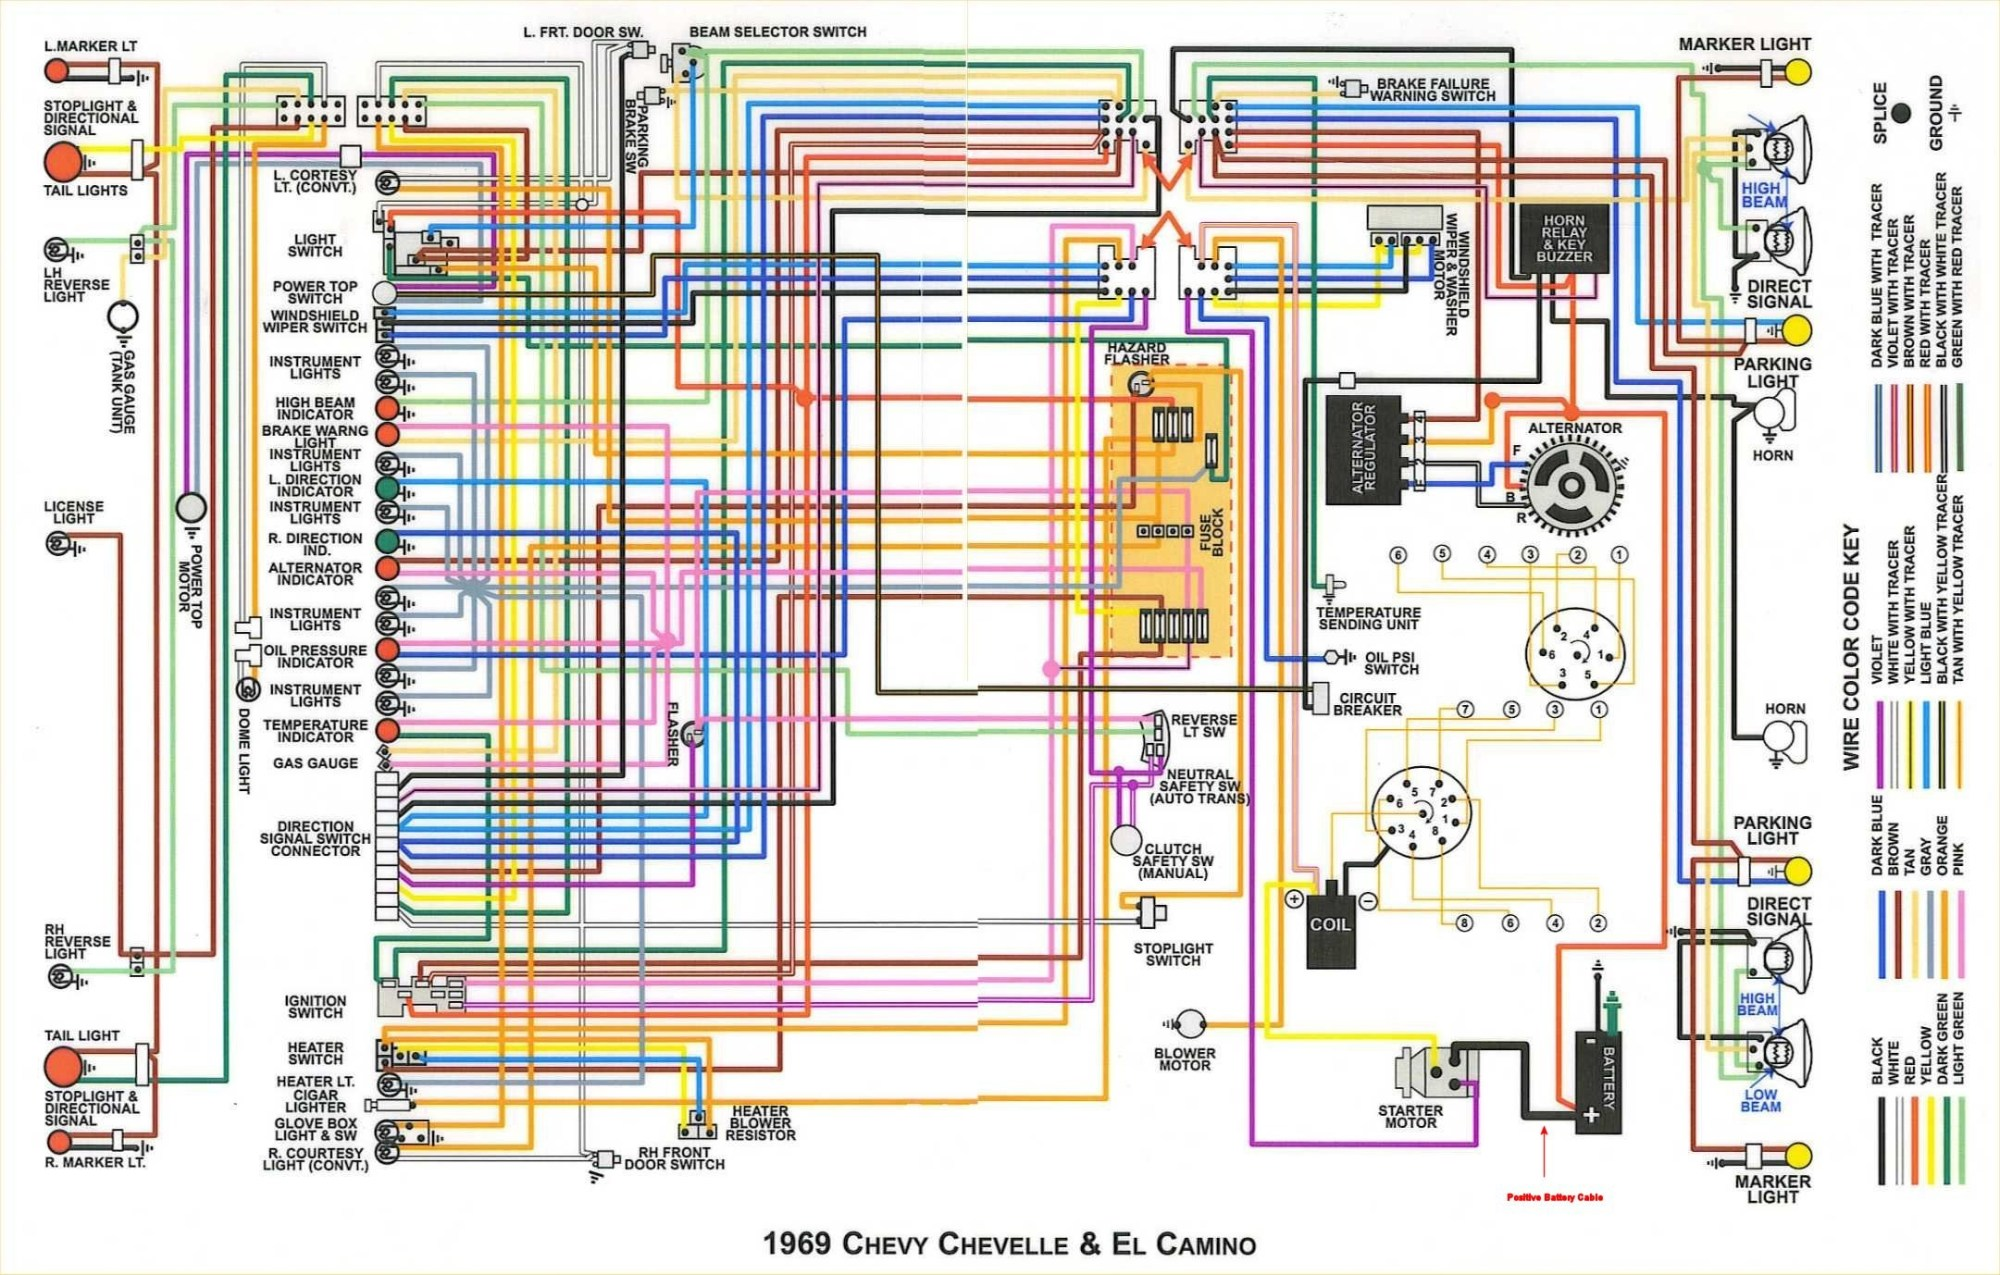 hight resolution of 1970 chevelle engine wiring harness oem wiring diagram for you 69 pontiac starter wiring diagram free picture